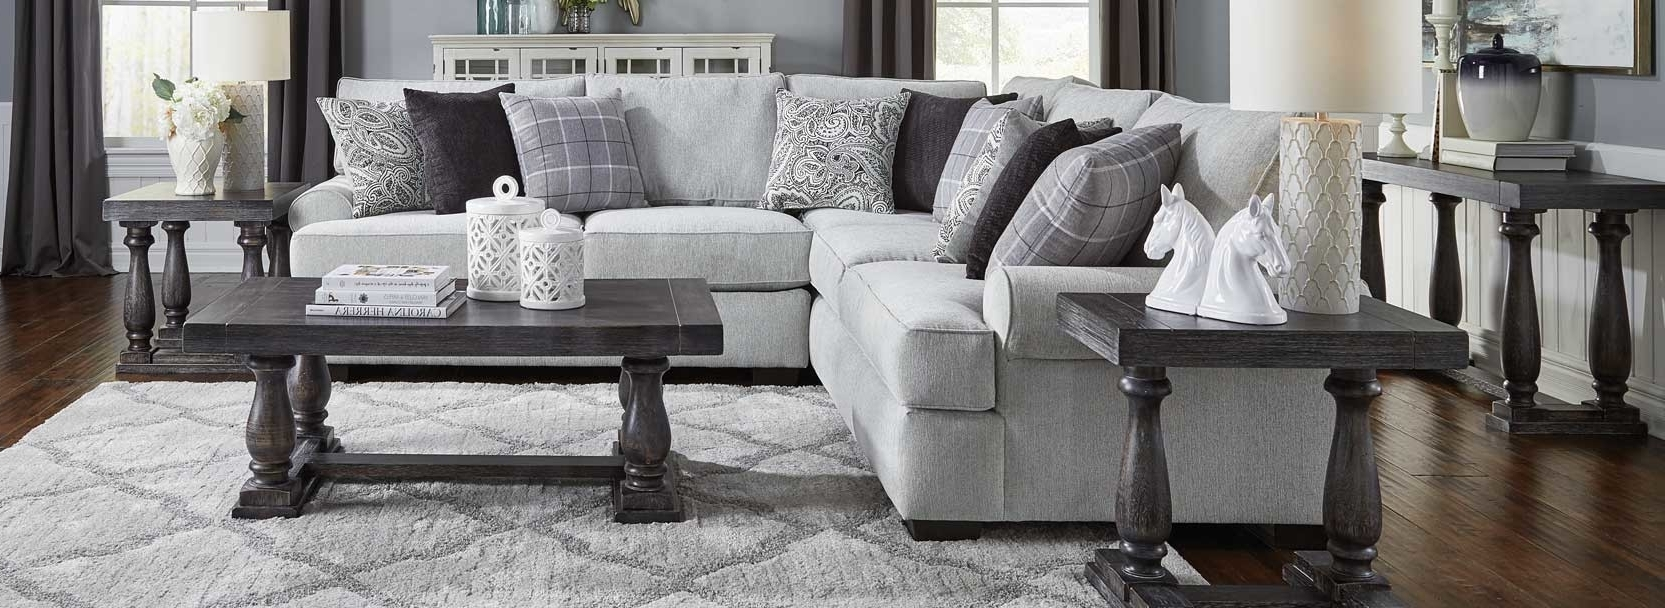 Most Up To Date Valdosta Ga Sectional Sofas For Farmers Furniture In Valdosta Ga (View 13 of 15)